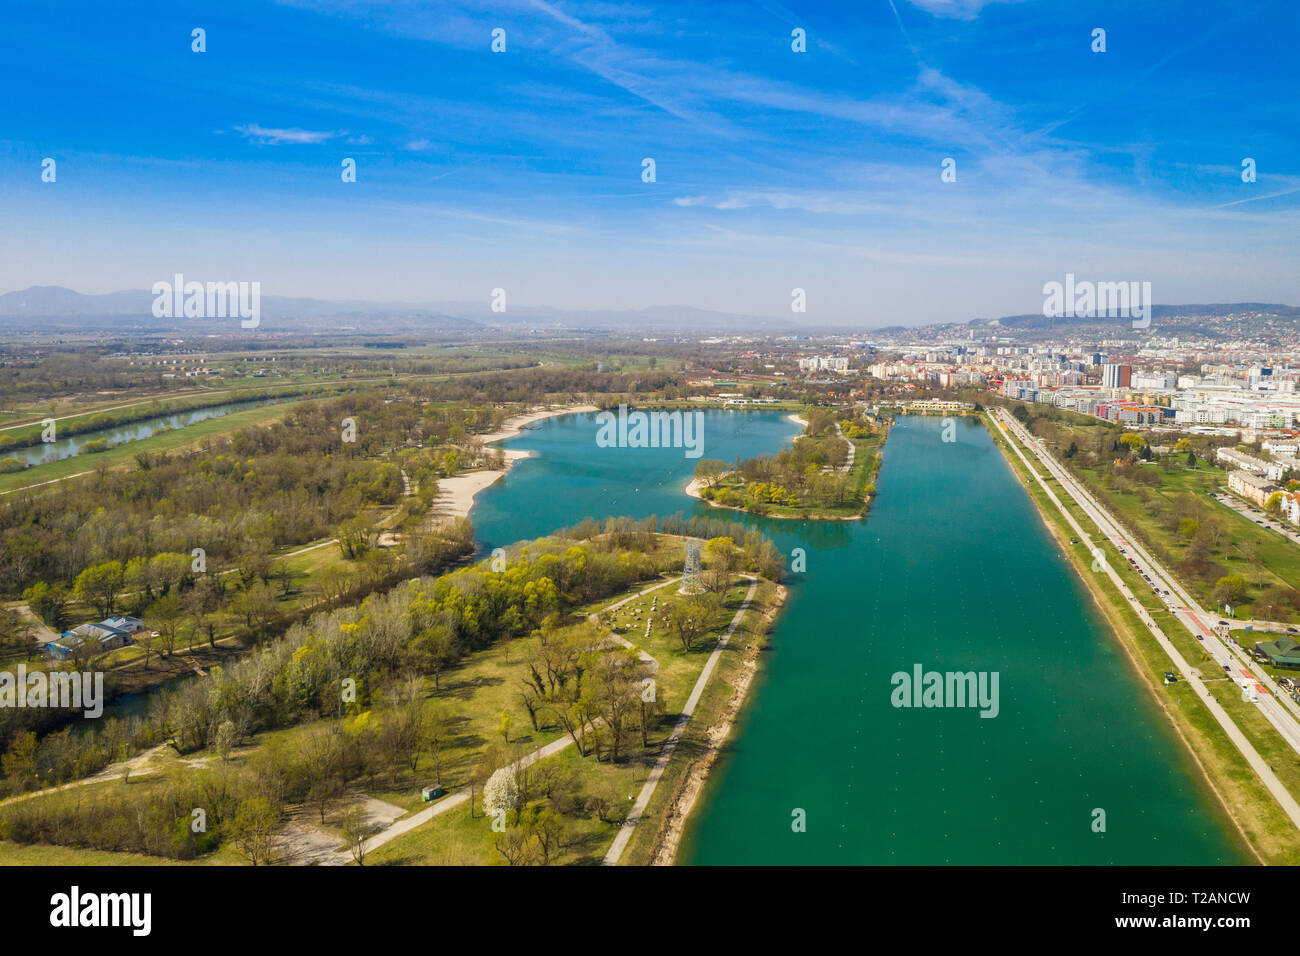 Zagreb Croatia Jarun Lake Beautiful Green Recreation Park Area Sunny Spring Day Panoramic View From Drone City In Background Stock Photo Alamy